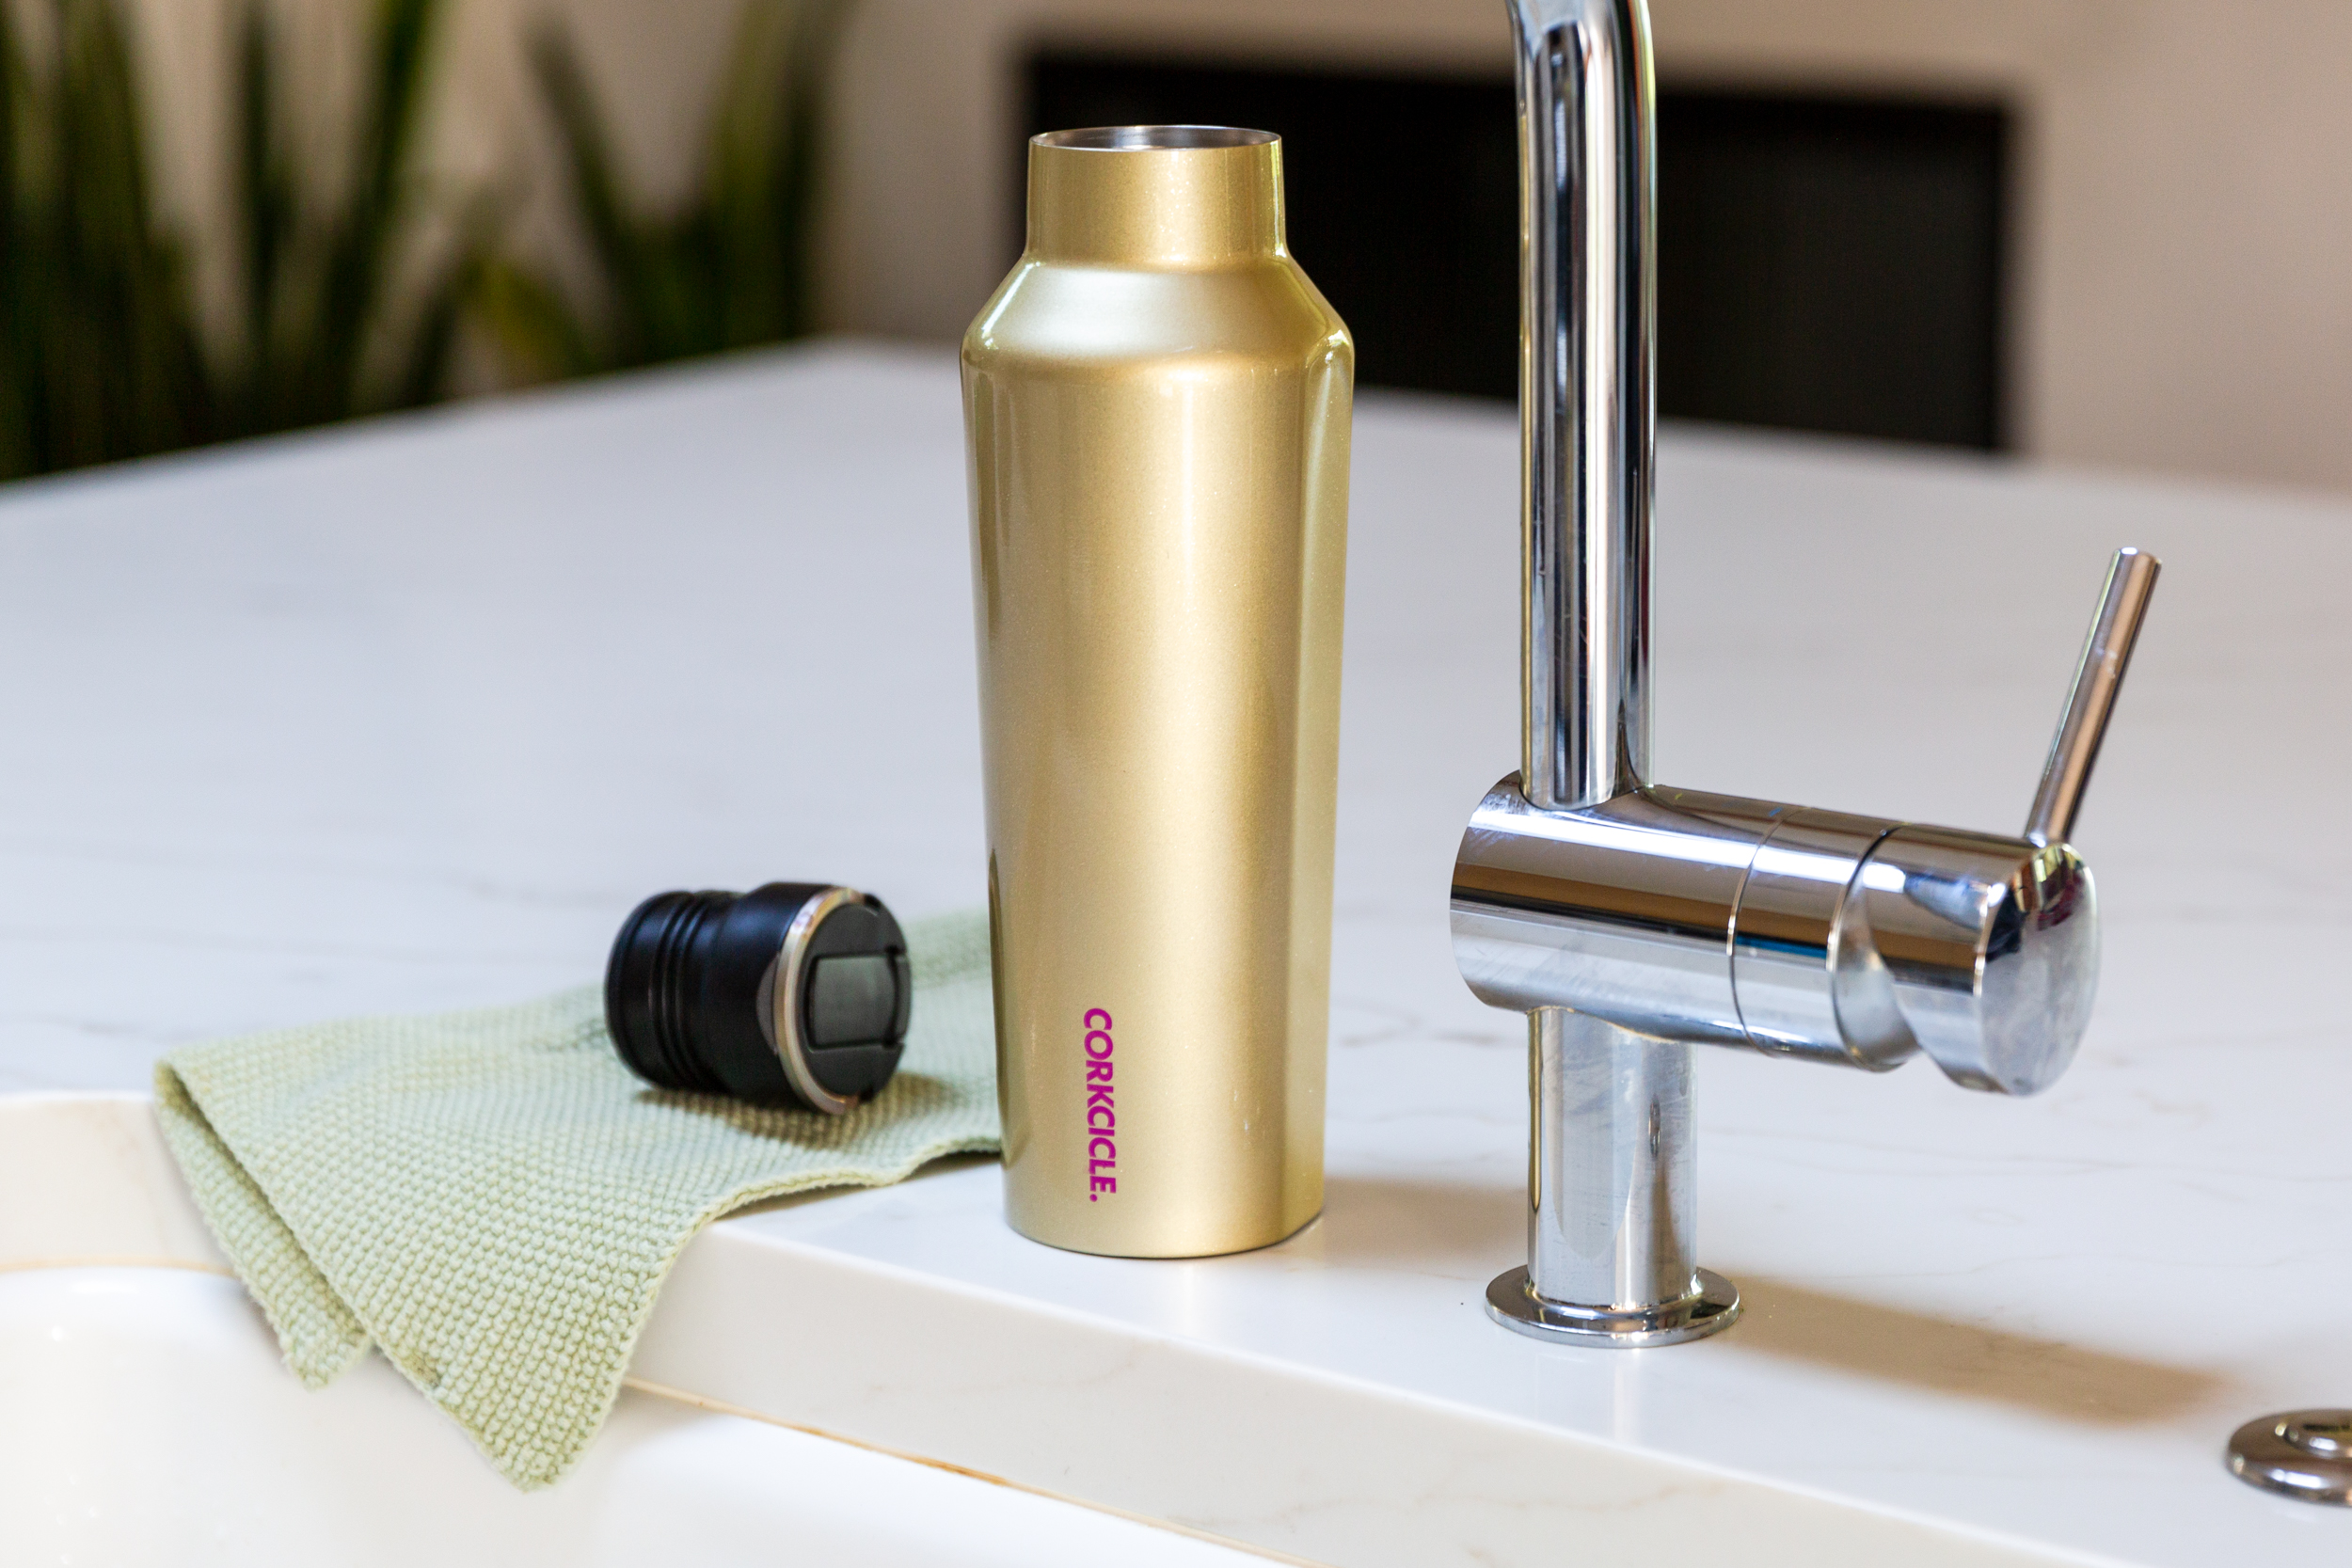 Guide to Cleaning Your Reusable Water Bottle | Hunker